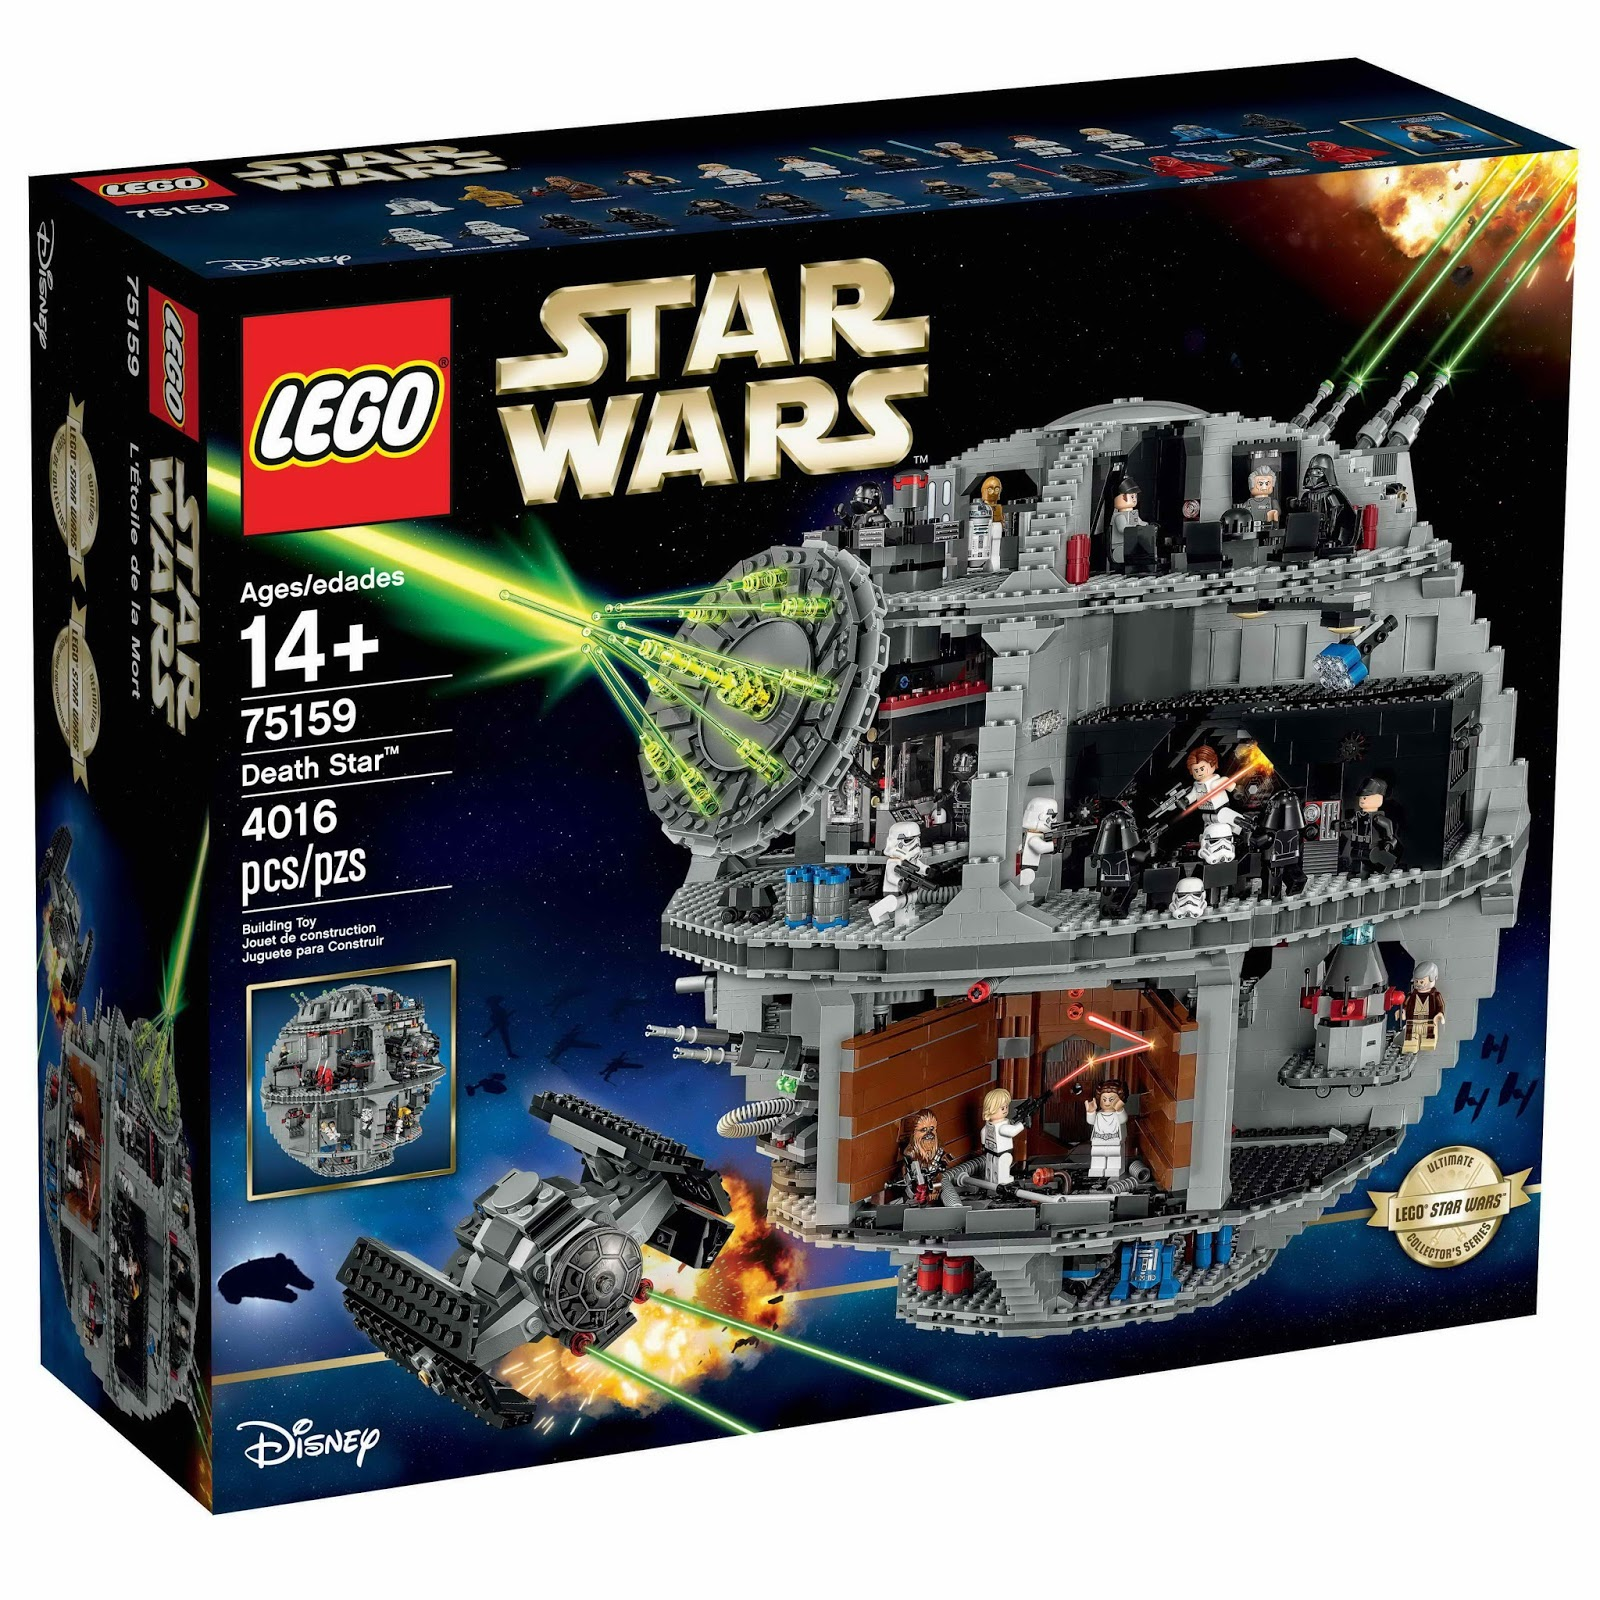 LEGO gosSIP: 140816 LEGO 75159 Death Star box art